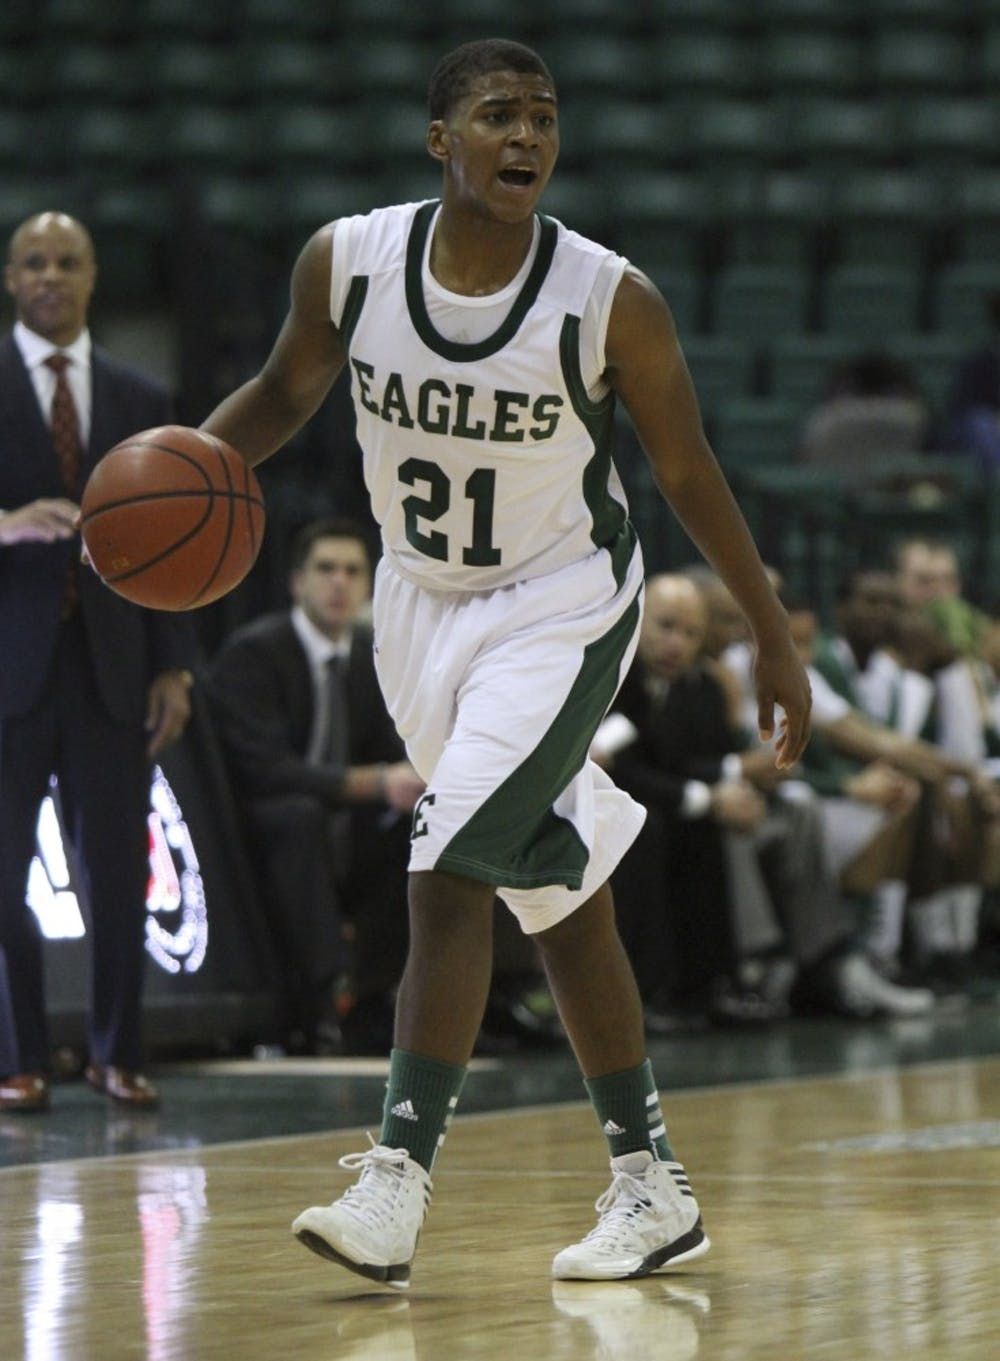 Last second foul spoils MAC opener for Eagles